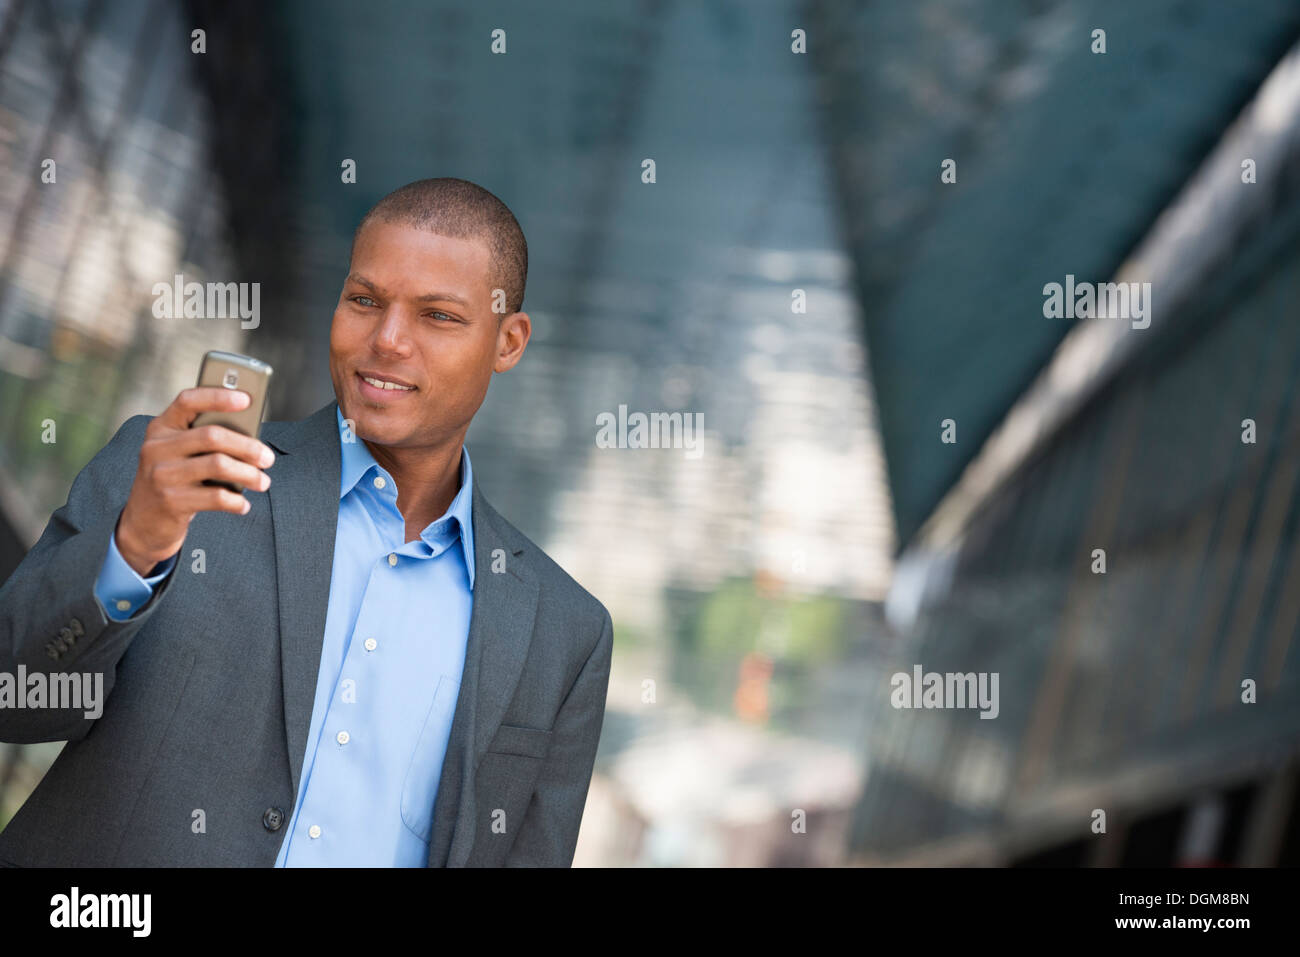 A businessman in a suit, with his shirt collar unbuttoned. On a New York city street. Using a smart phone. - Stock Image